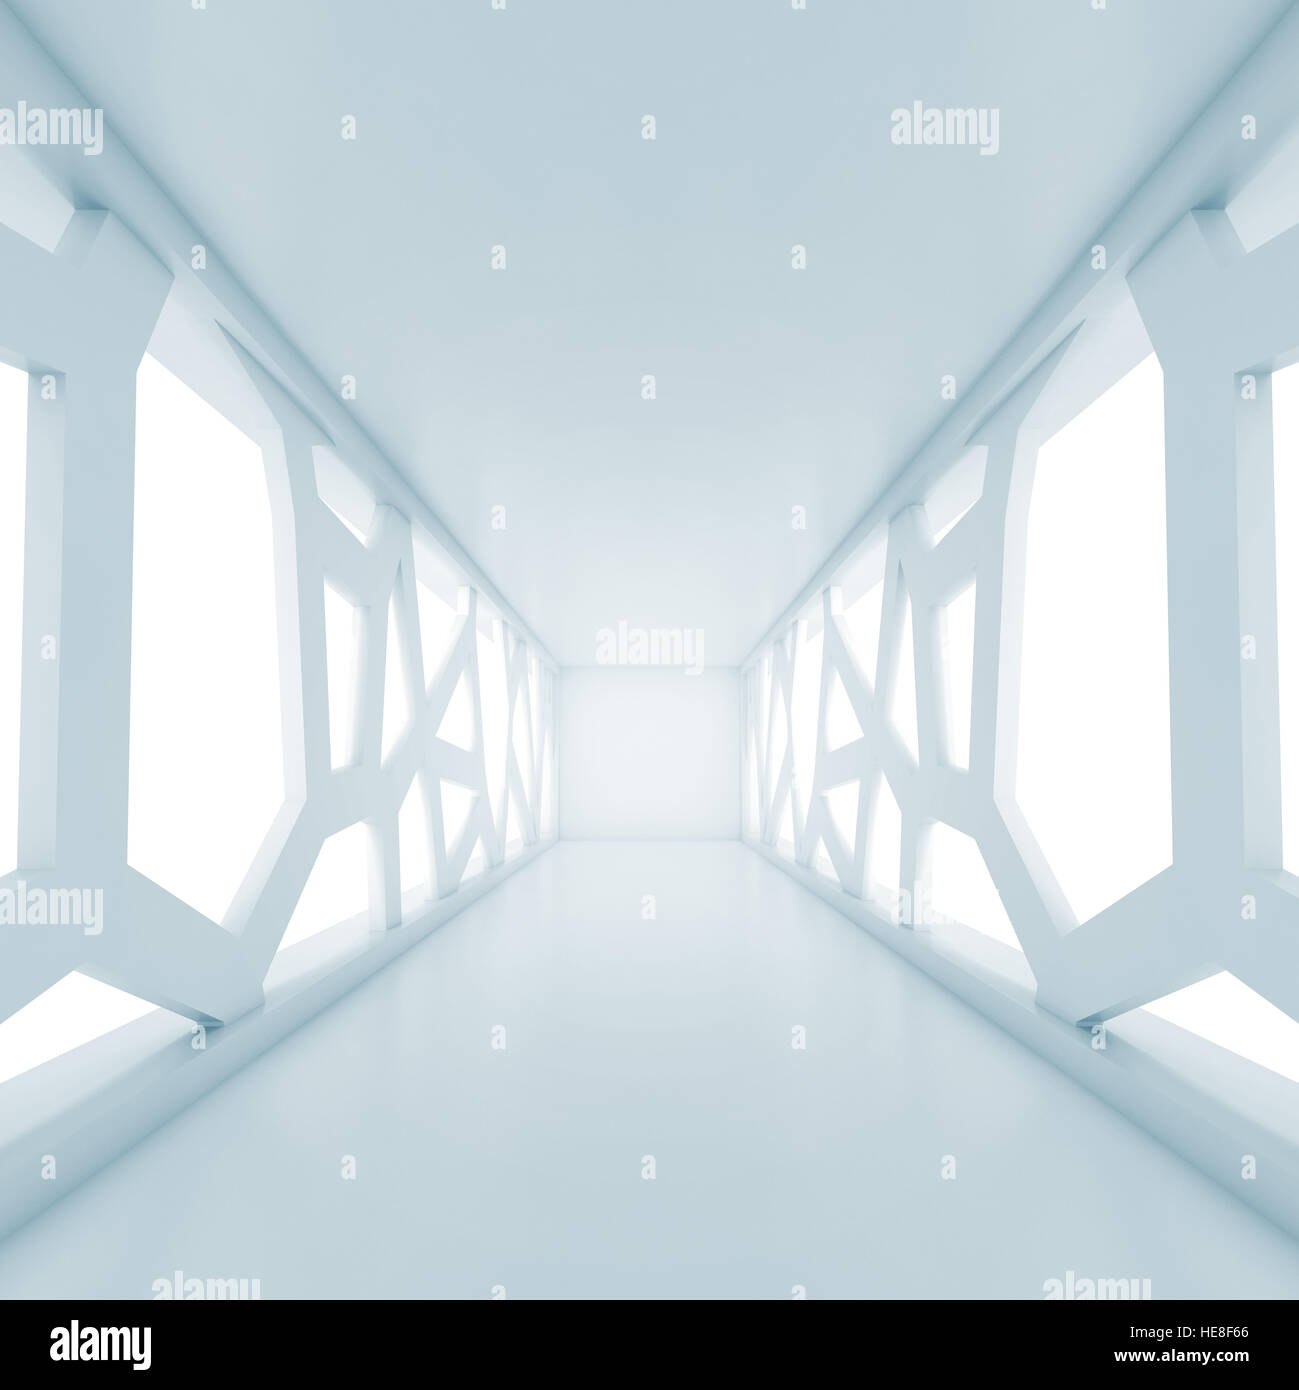 Digital Windows abstract empty room interior perspective with big futuristic